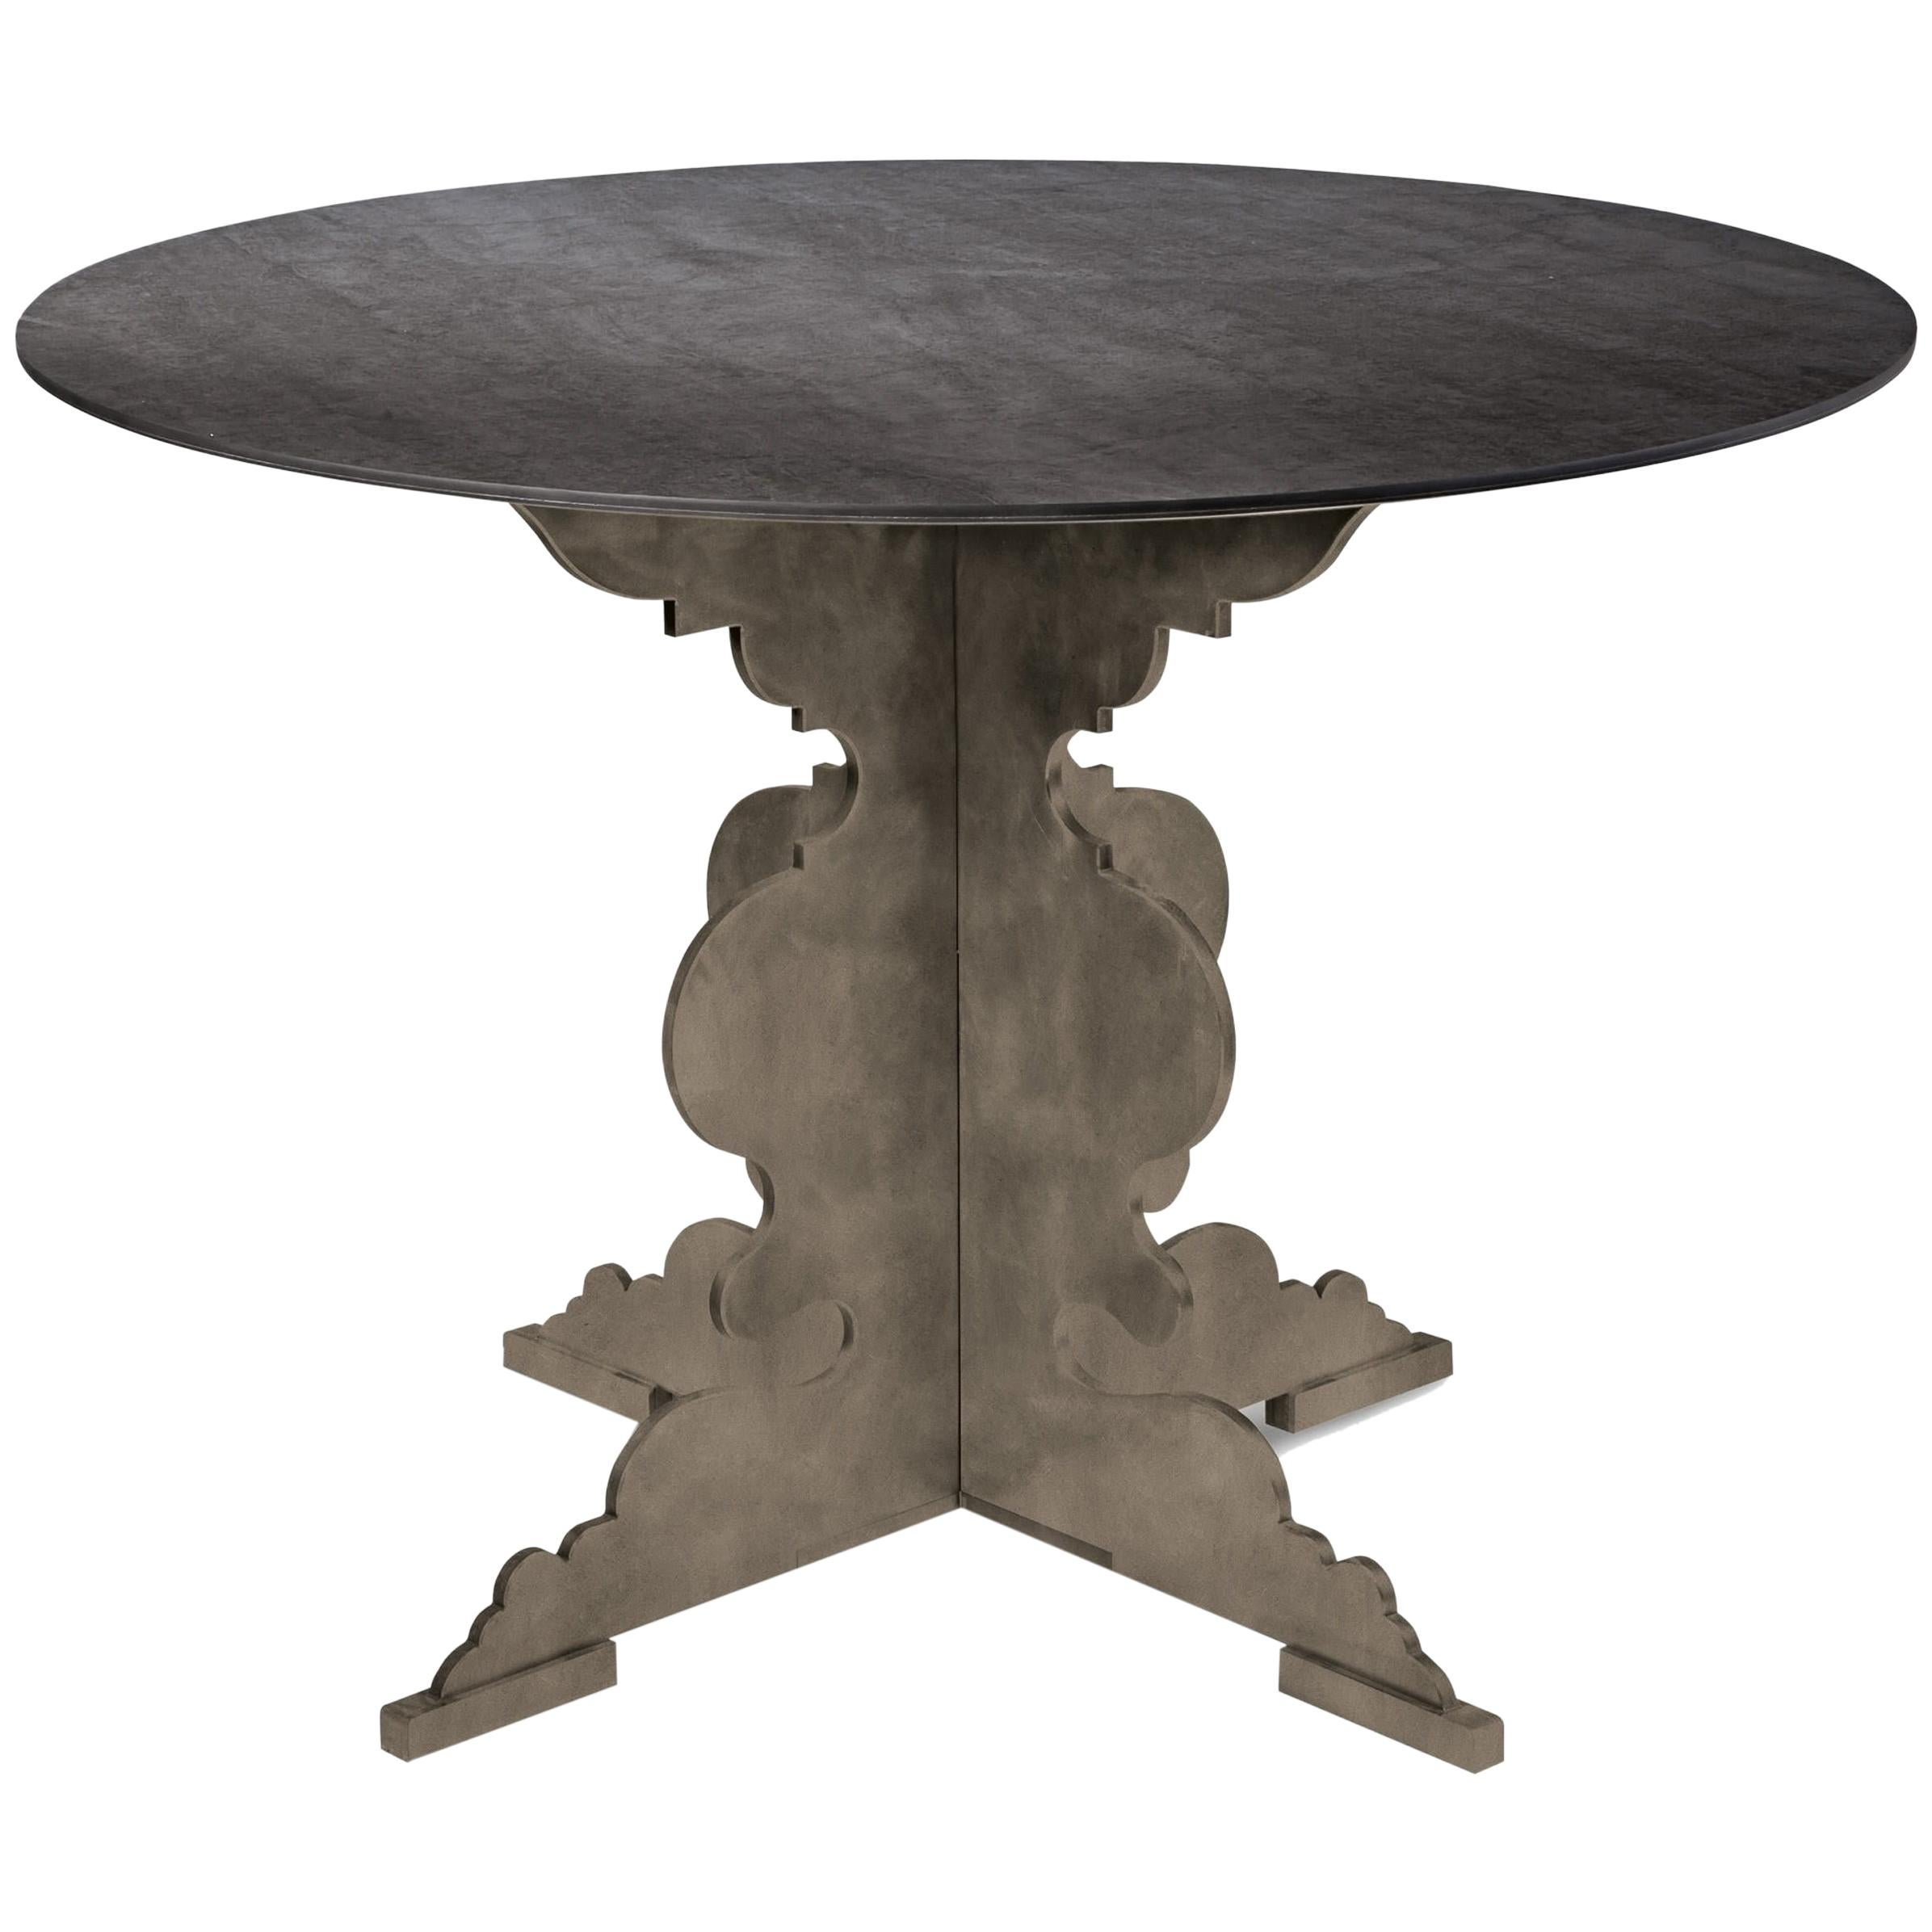 Delicieux Moro Contemporary Round Dining Table With Steel Base For Sale